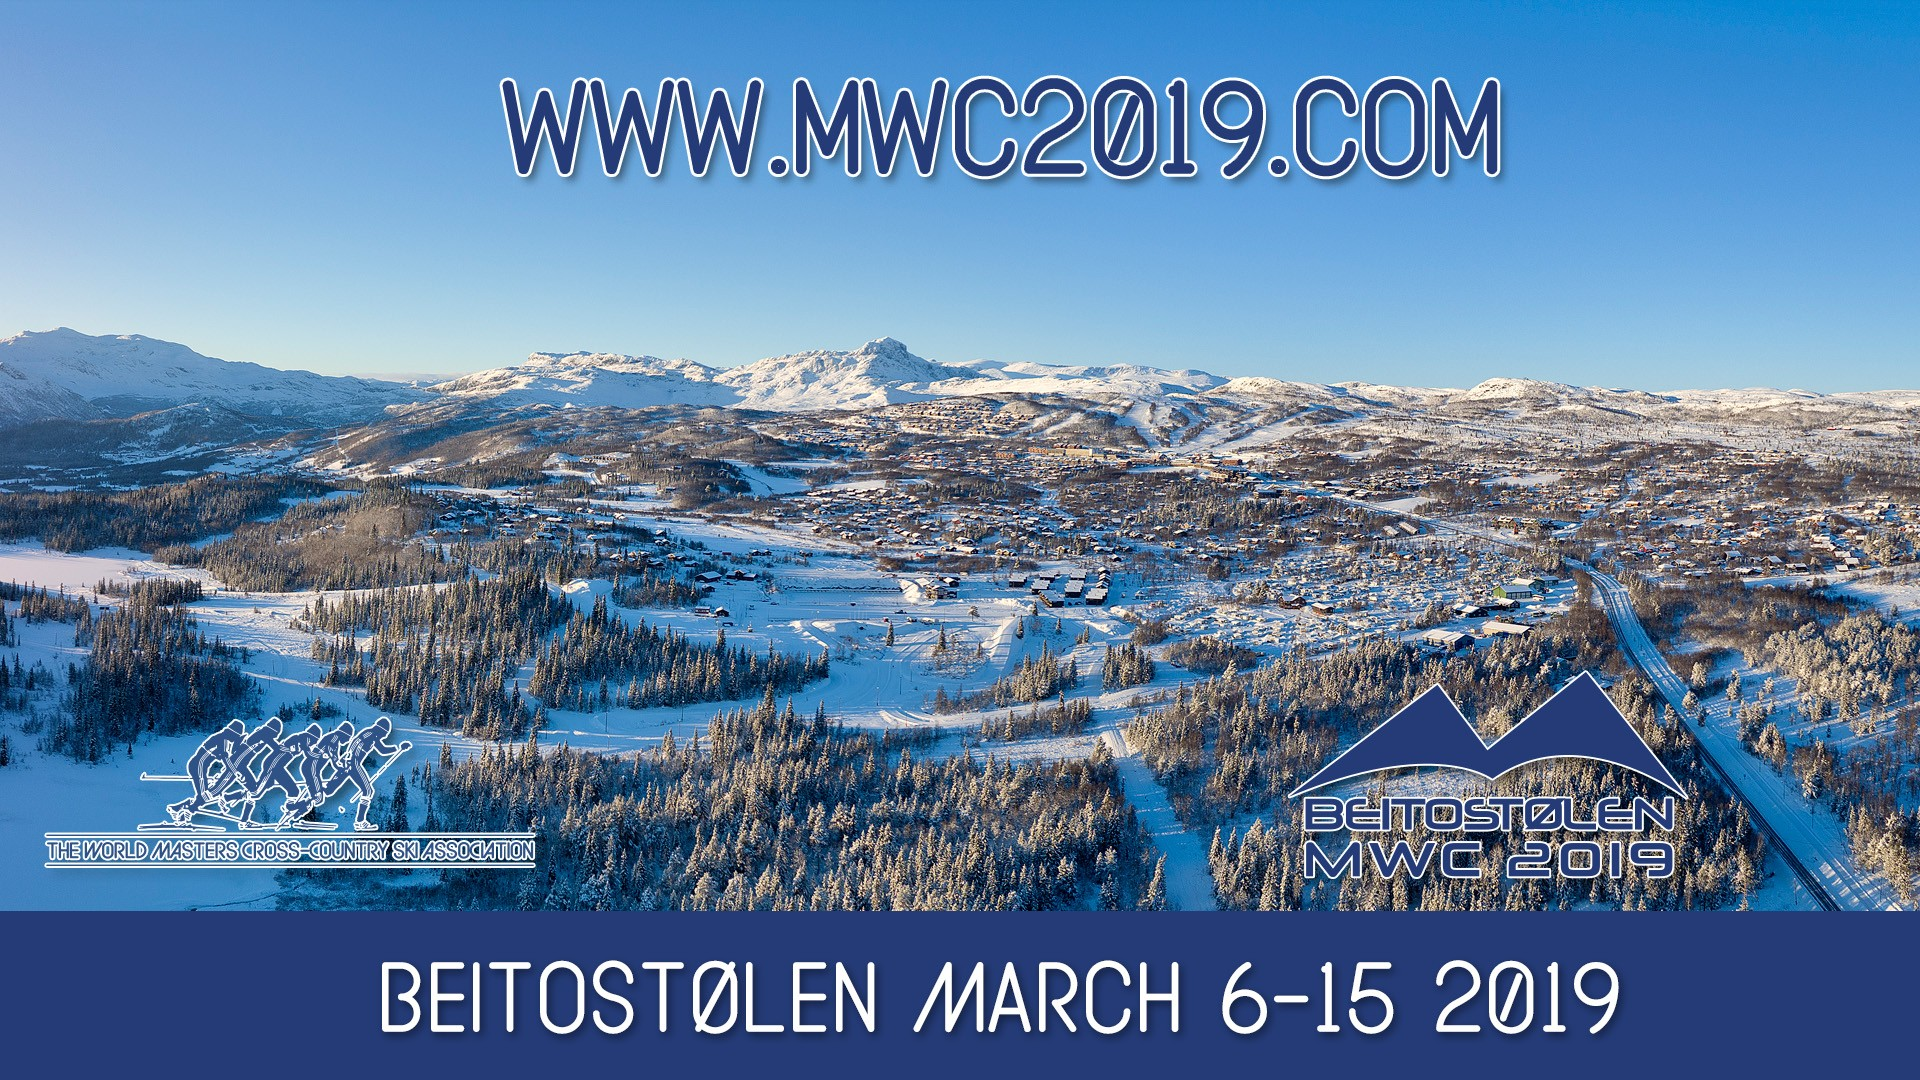 March 2019 Calendar Landscape Más Recientemente Liberado Masters World Cup 2019 Of March 2019 Calendar Landscape Más Arriba-a-fecha Travel with the Lakeland Chamber the israel Adventure May 24